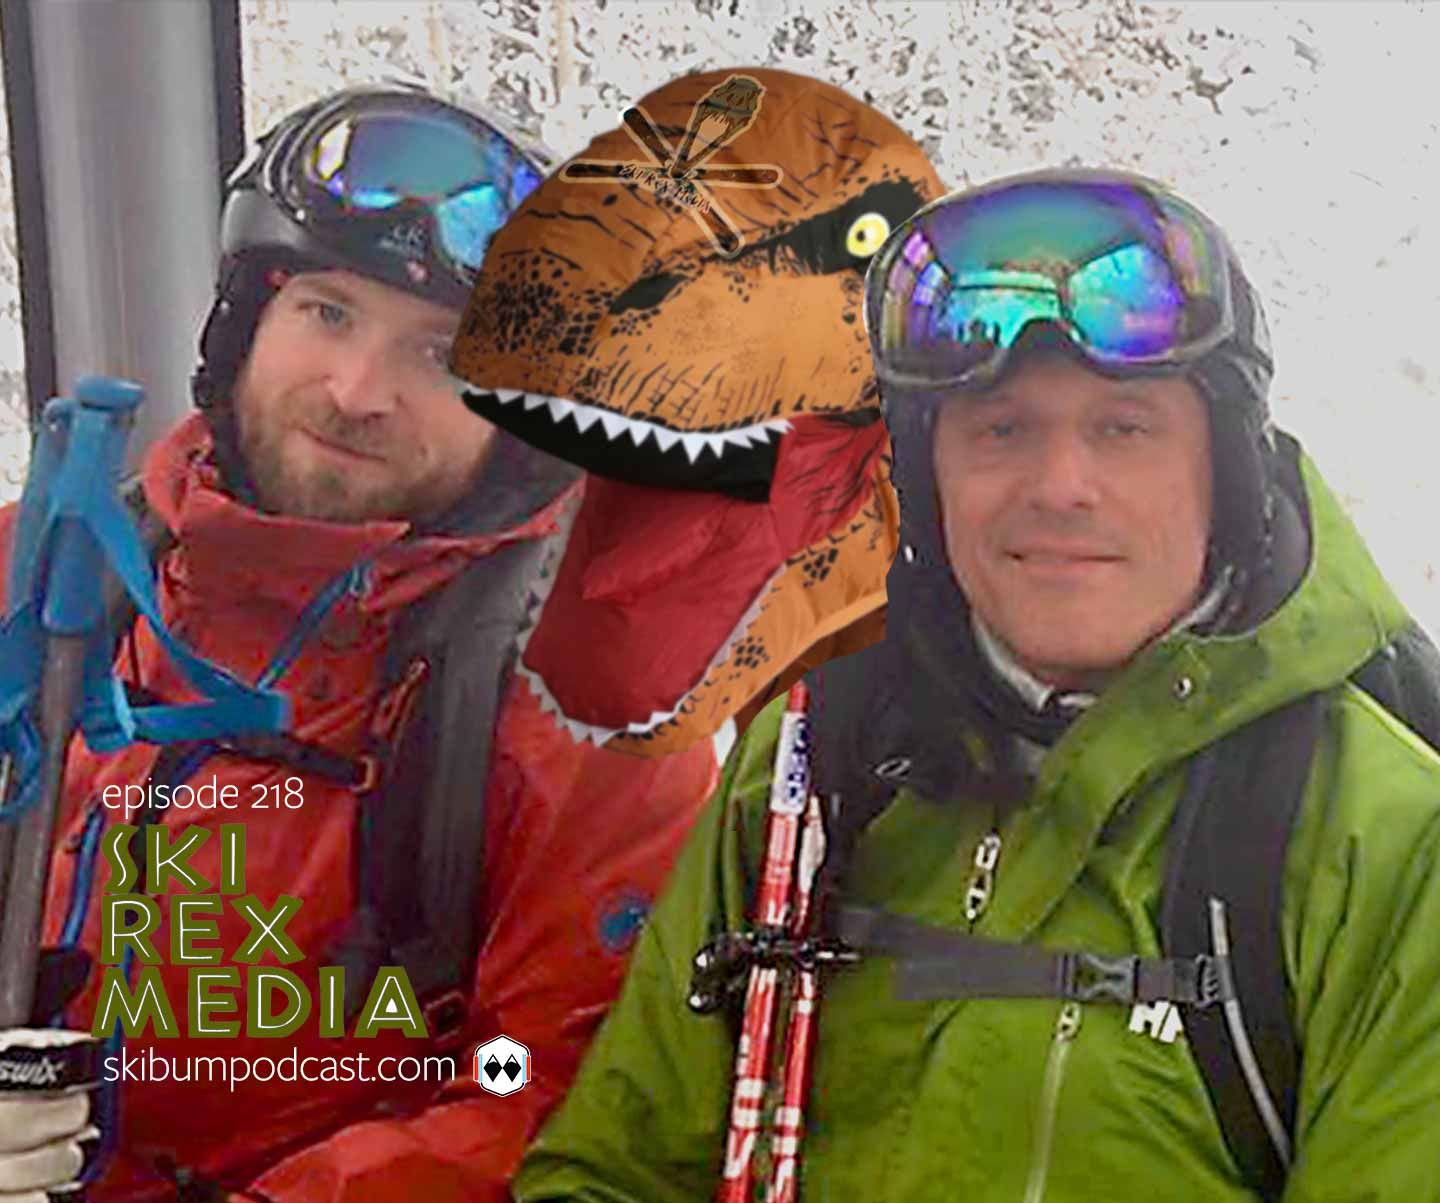 Podcast #218 – Ski Rex Media